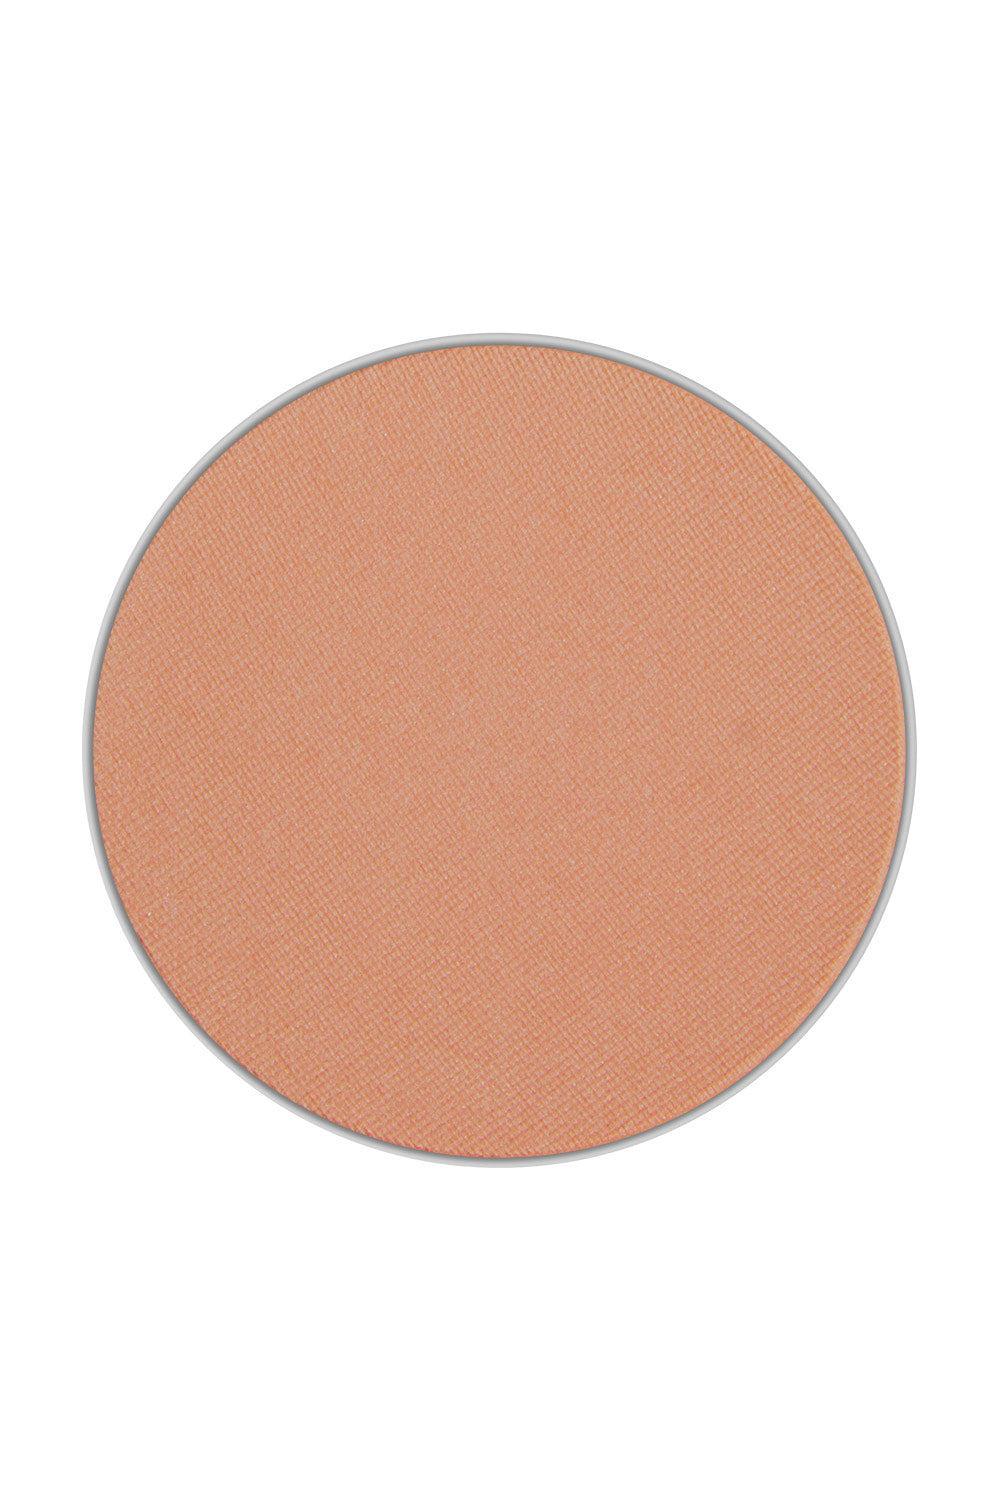 Type 2 Blush Pan - Whisper Nude